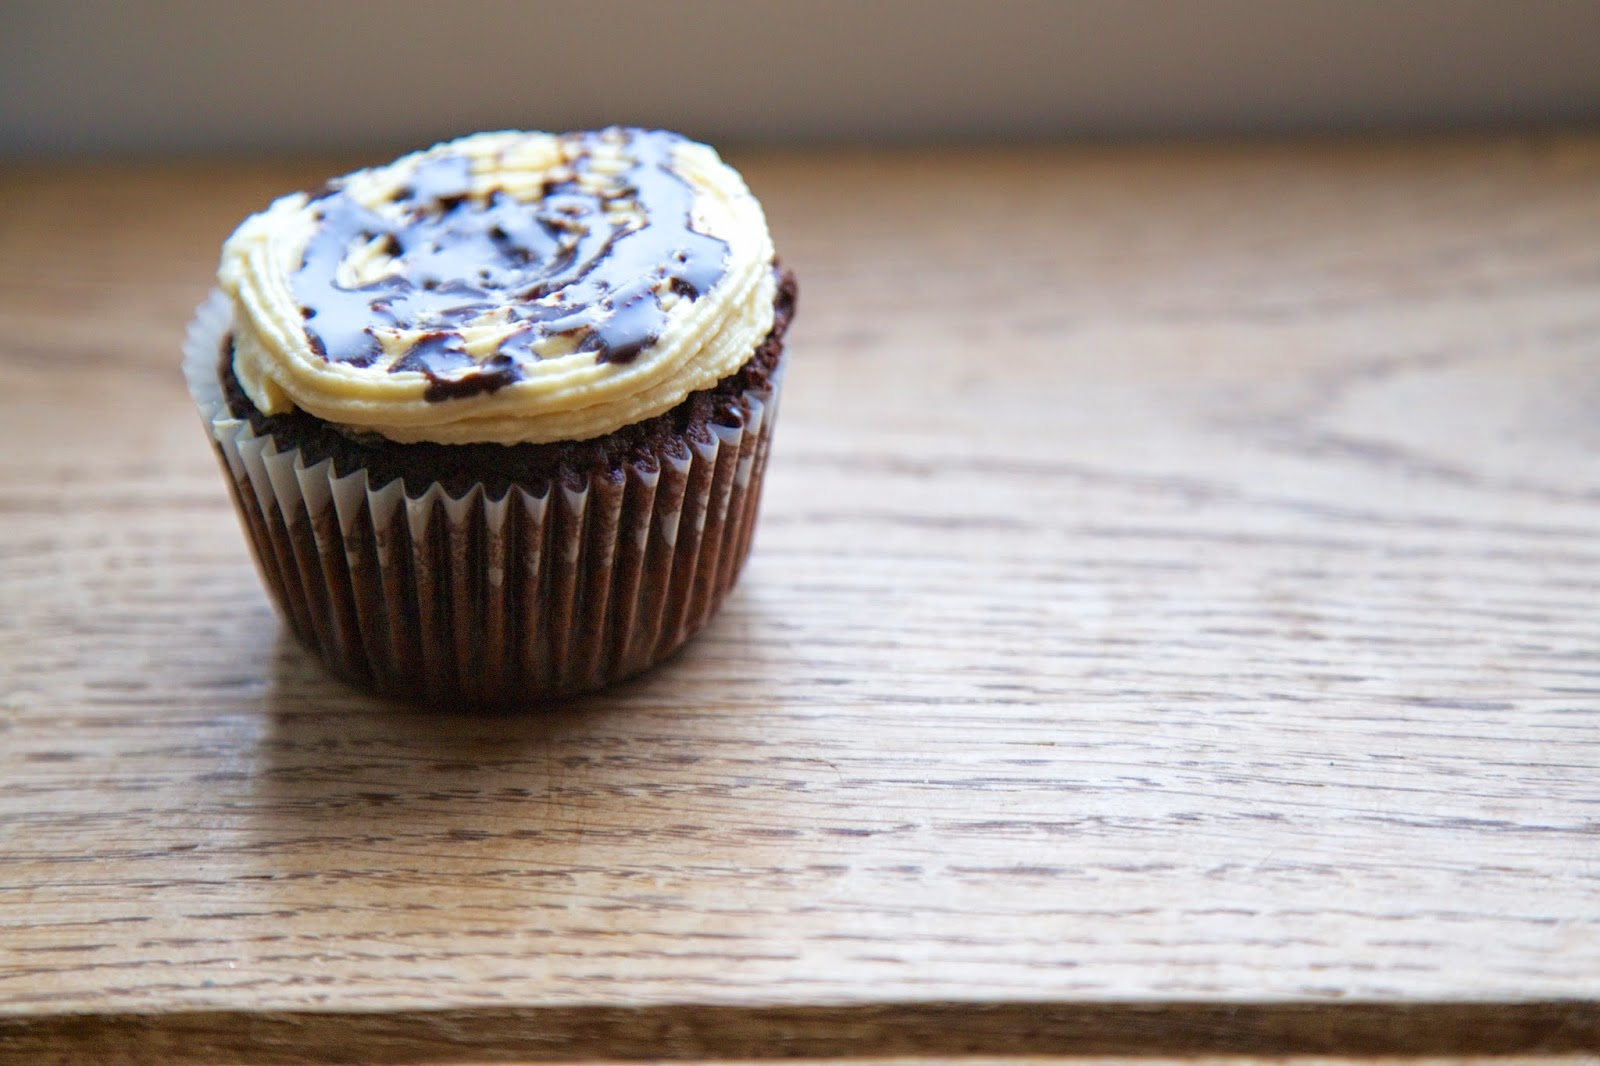 Chocolate cupcake with baileys frosting and chocolate sauce